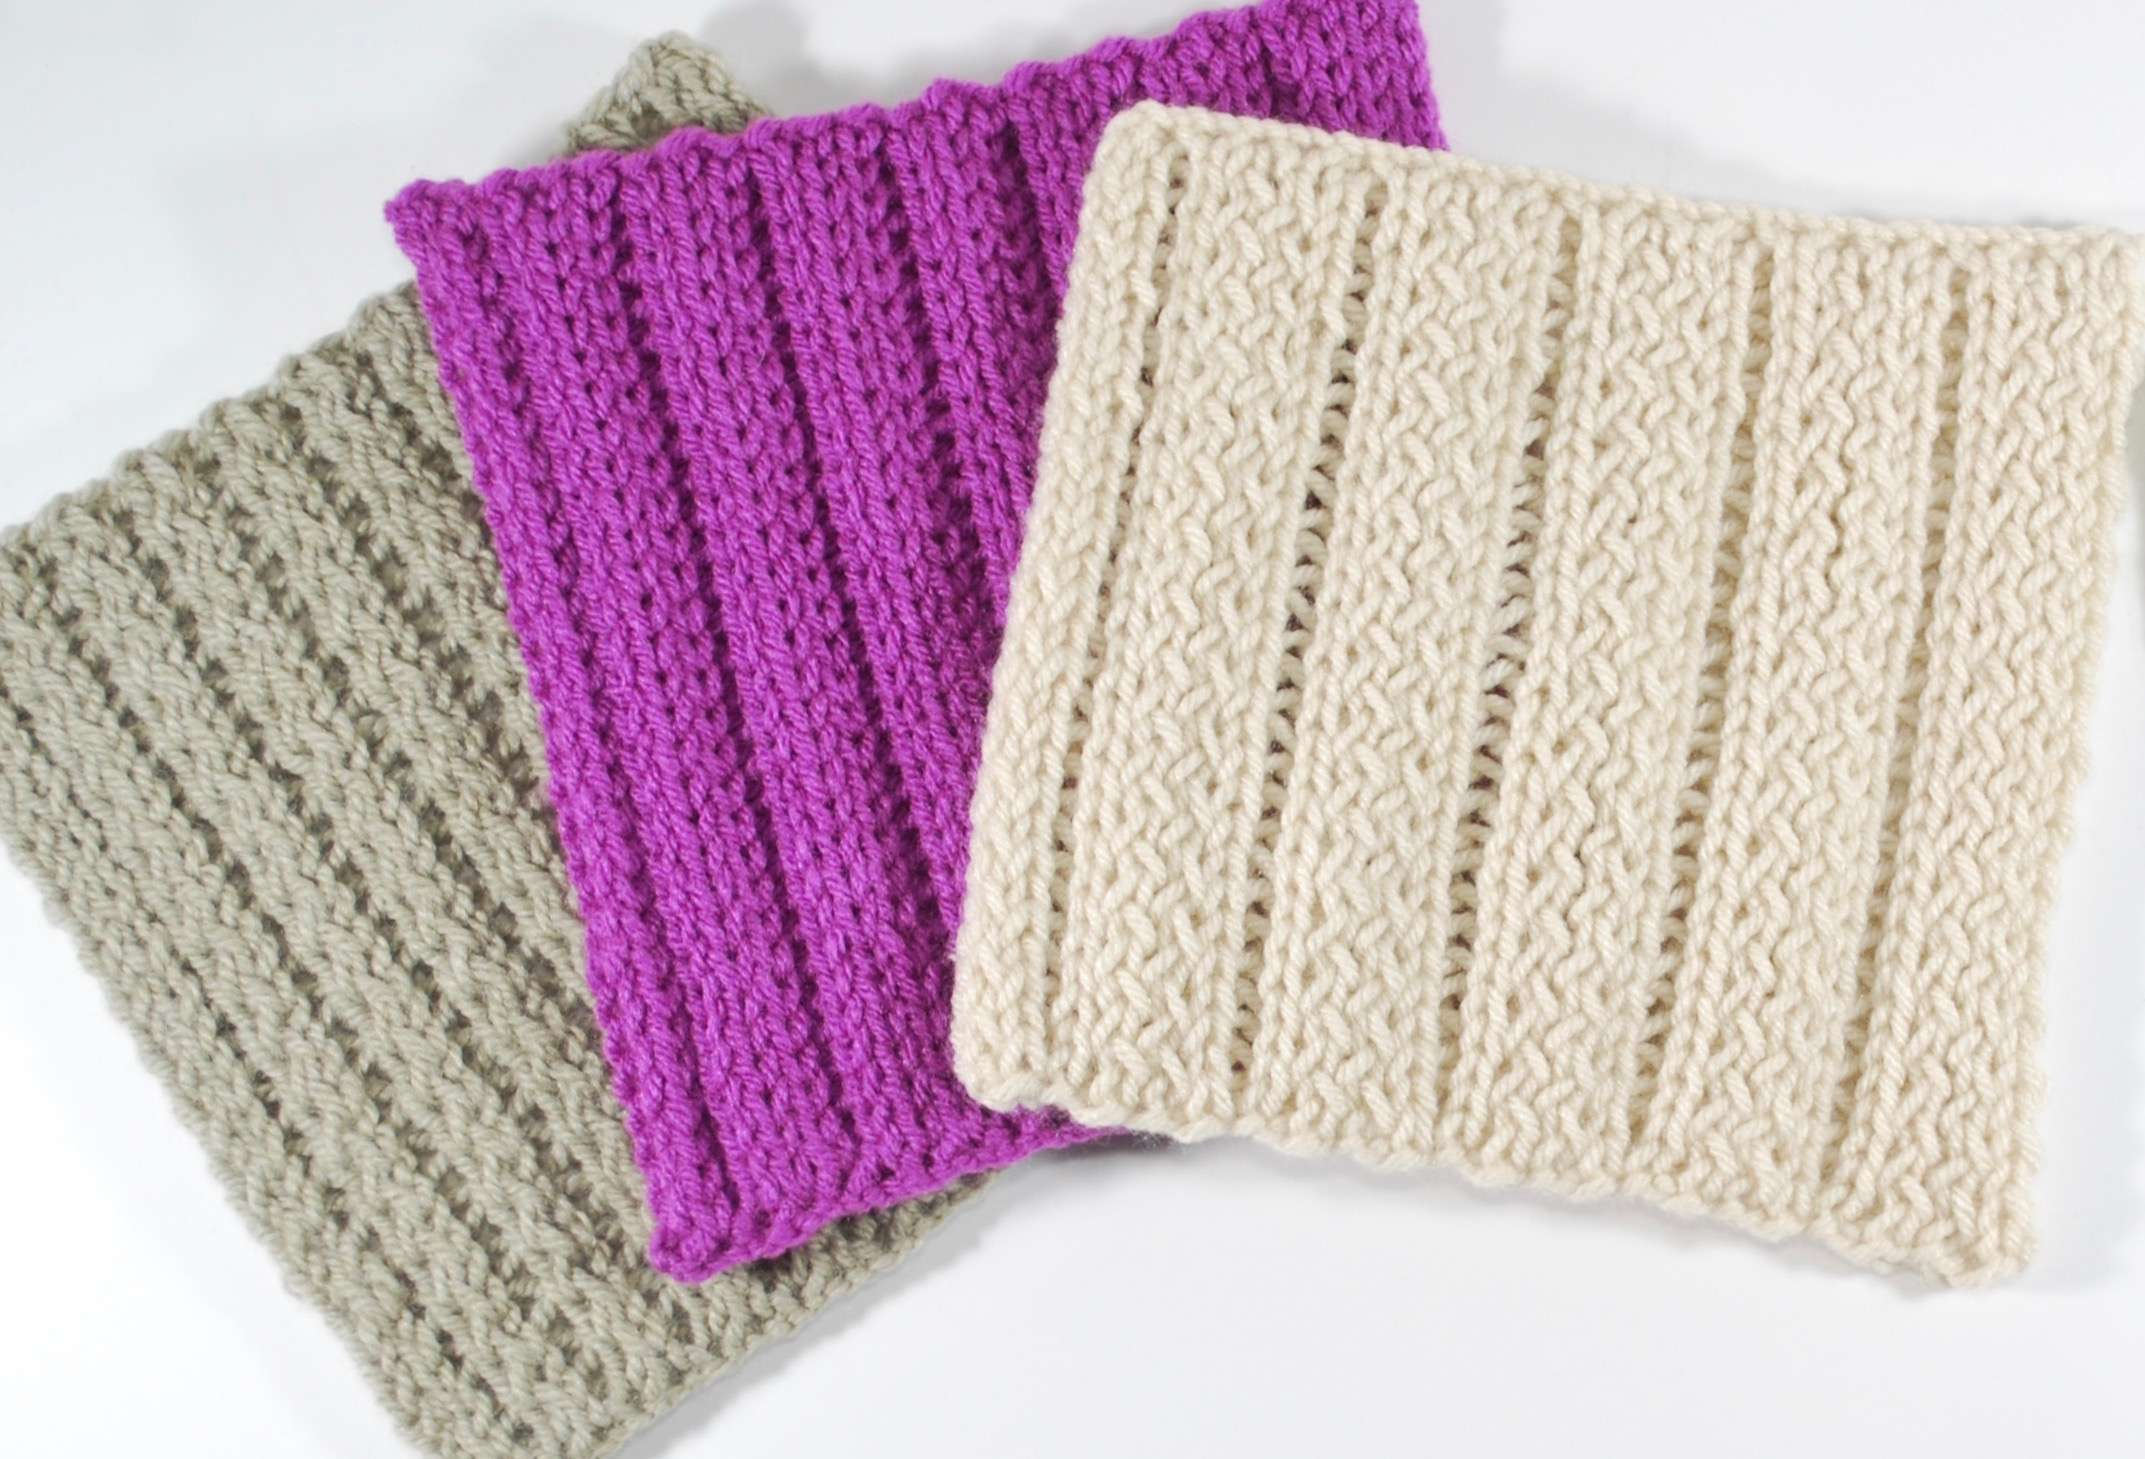 Twisted Pearl Stitch (double knit)   Knitting Board Blog